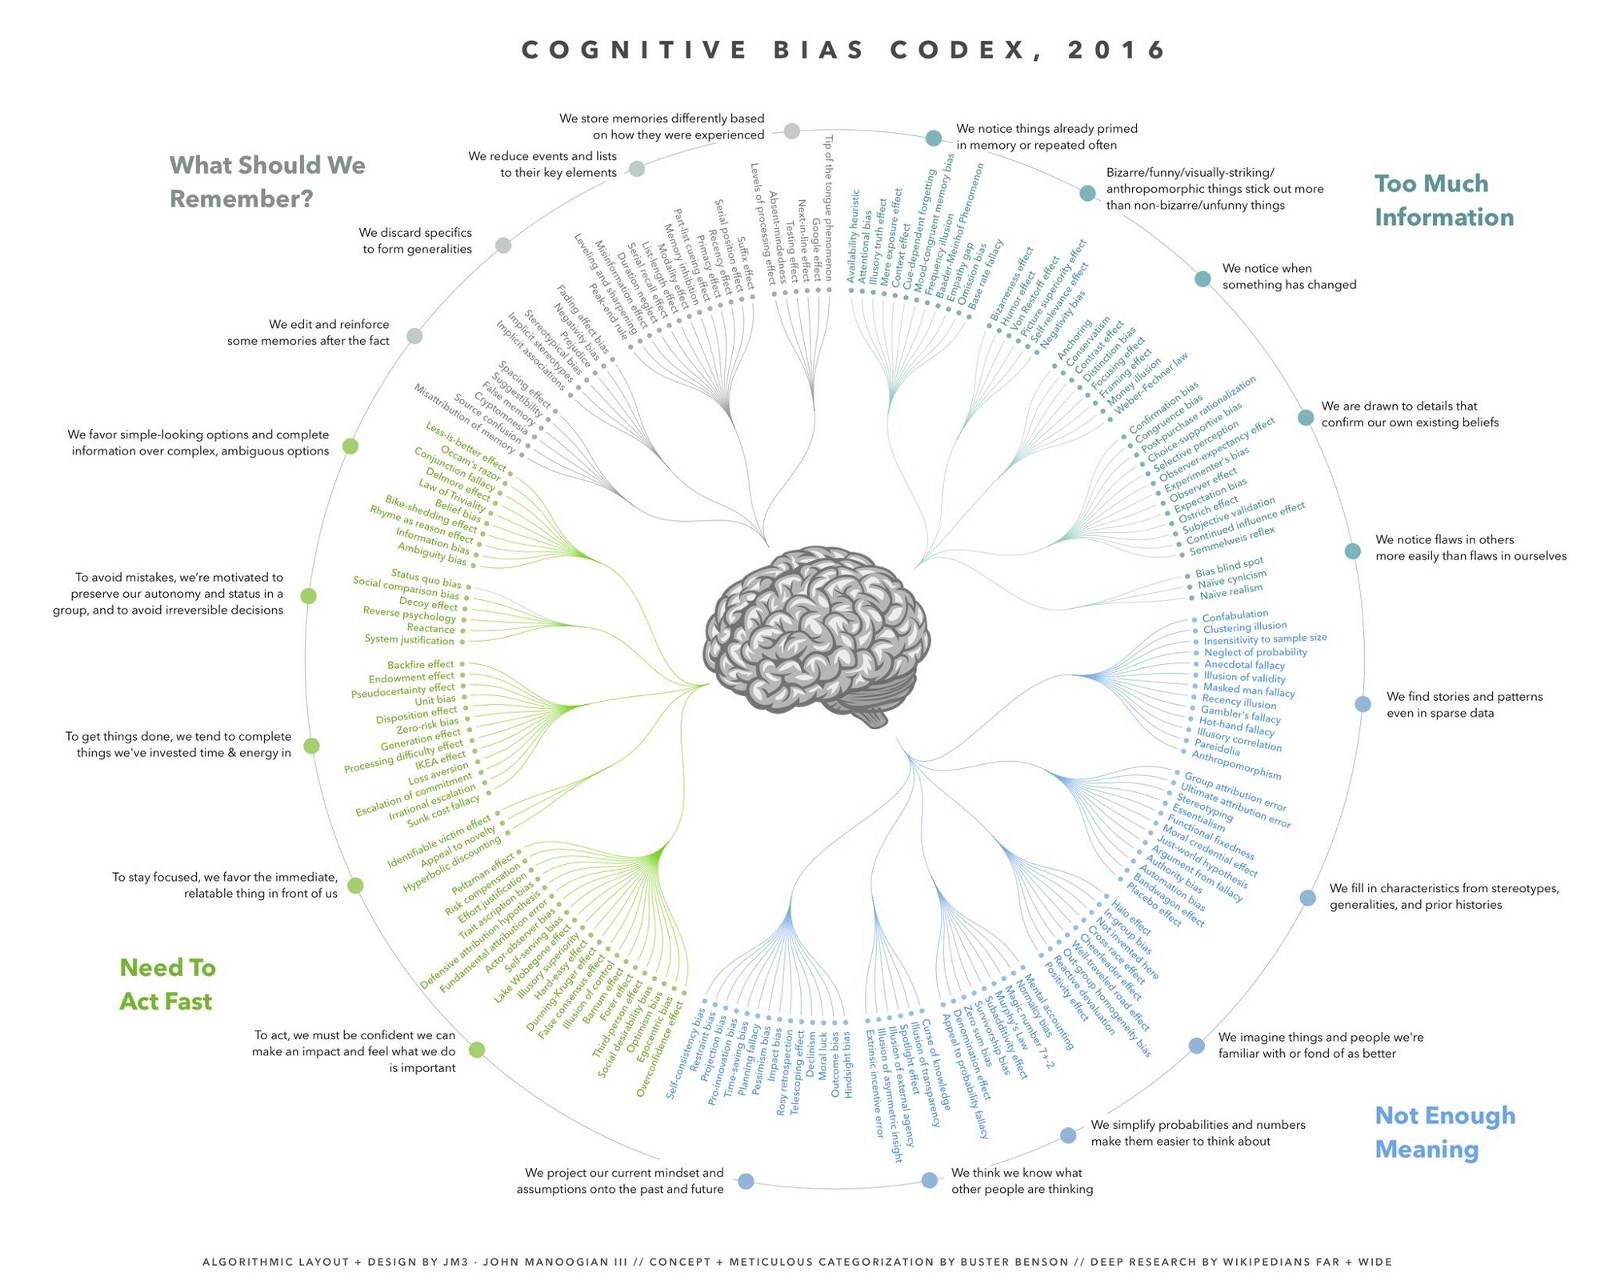 Flashcards to Learn 168 Cognitive Biases